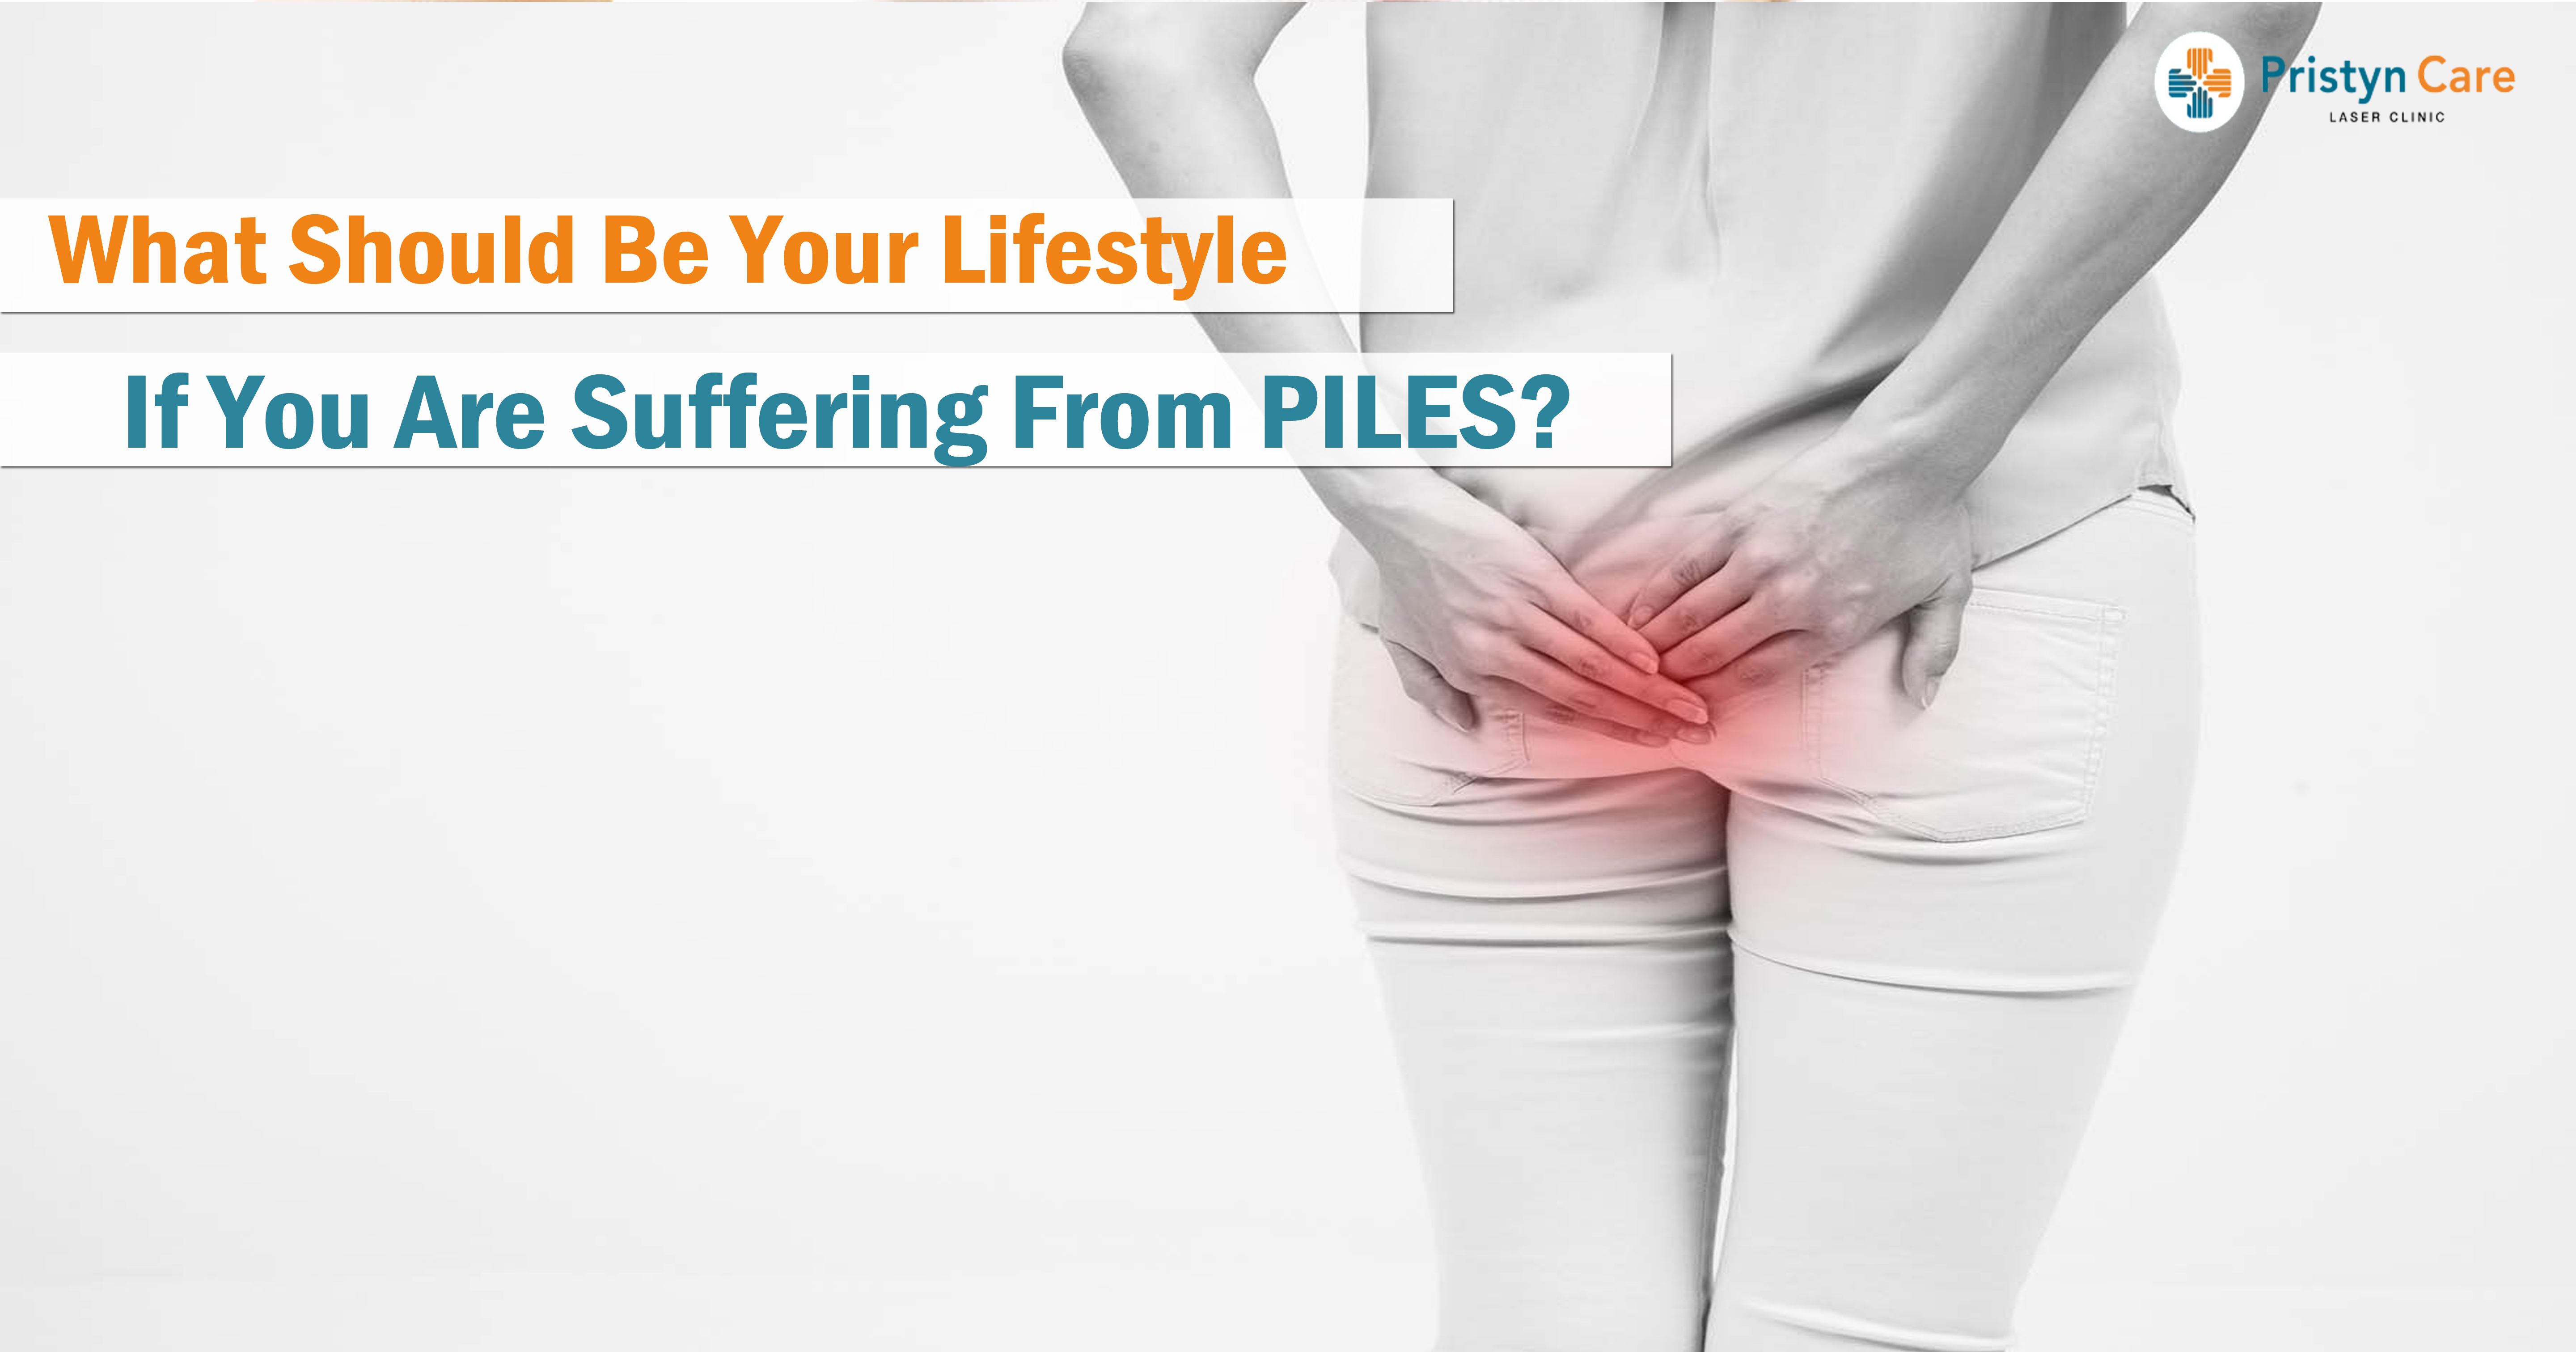 What should be your lifestyle if you are suffering from piles?